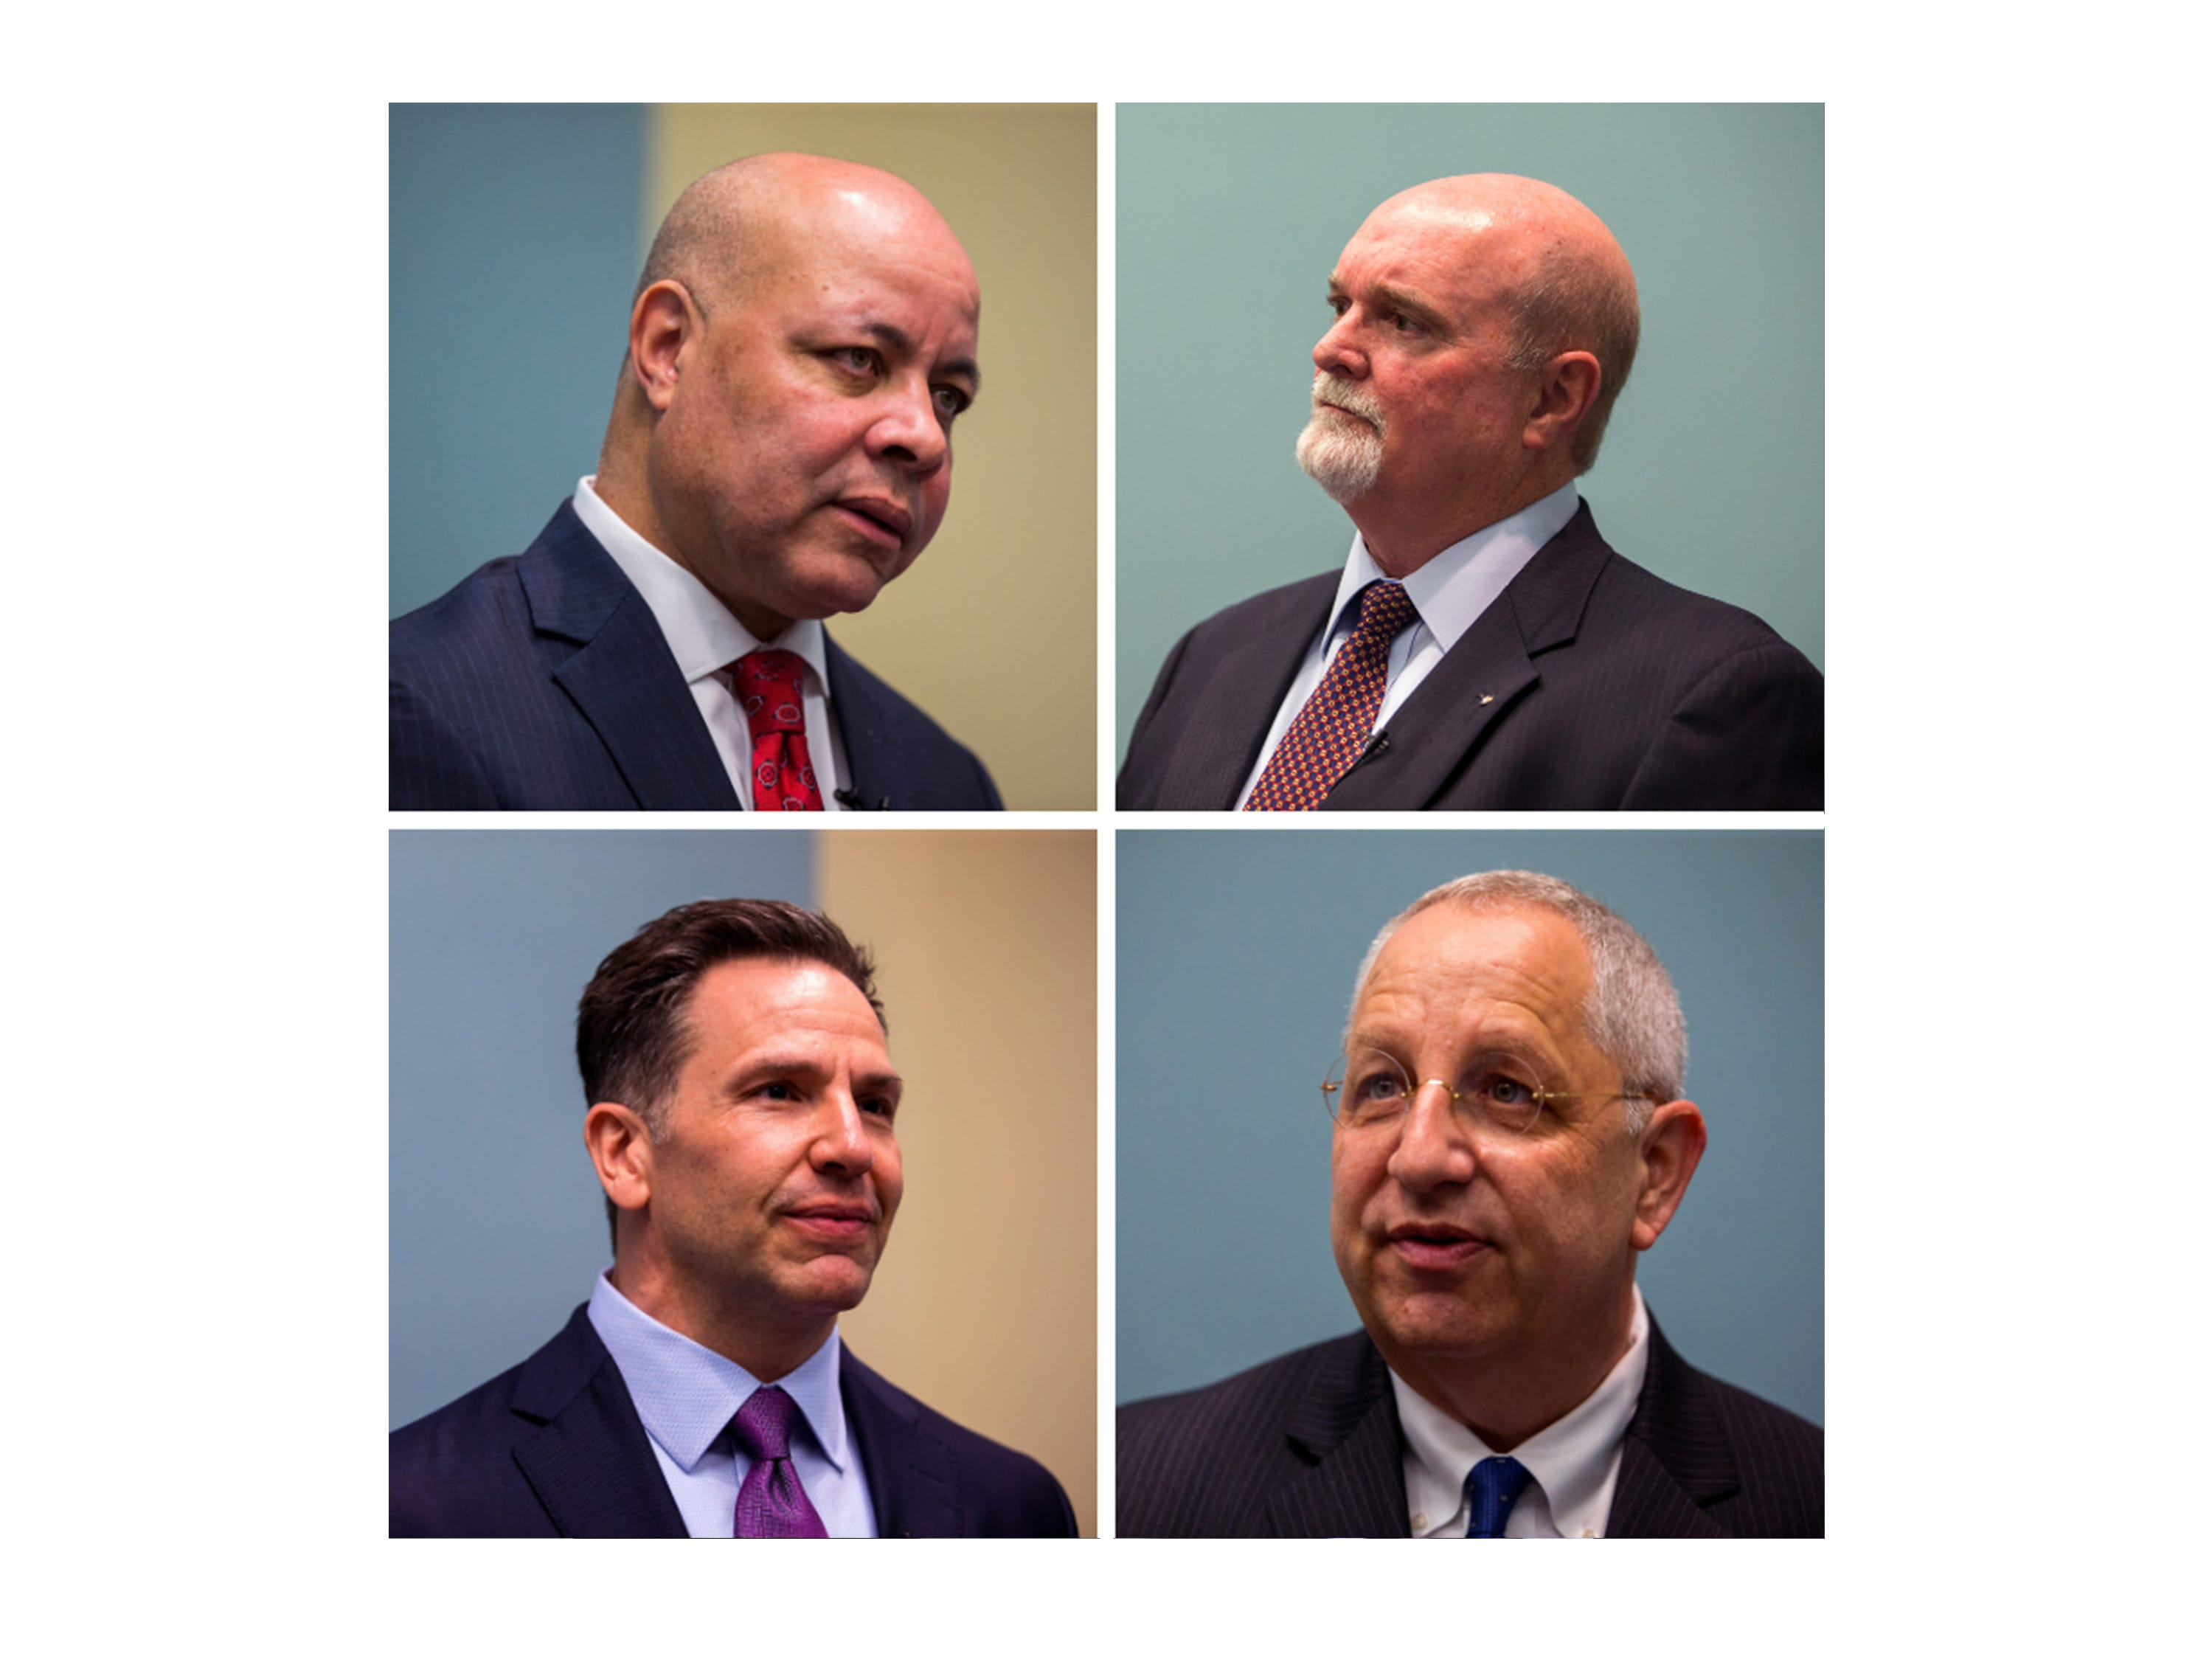 The finalists for the city manager position for the City of Corpus Christi.